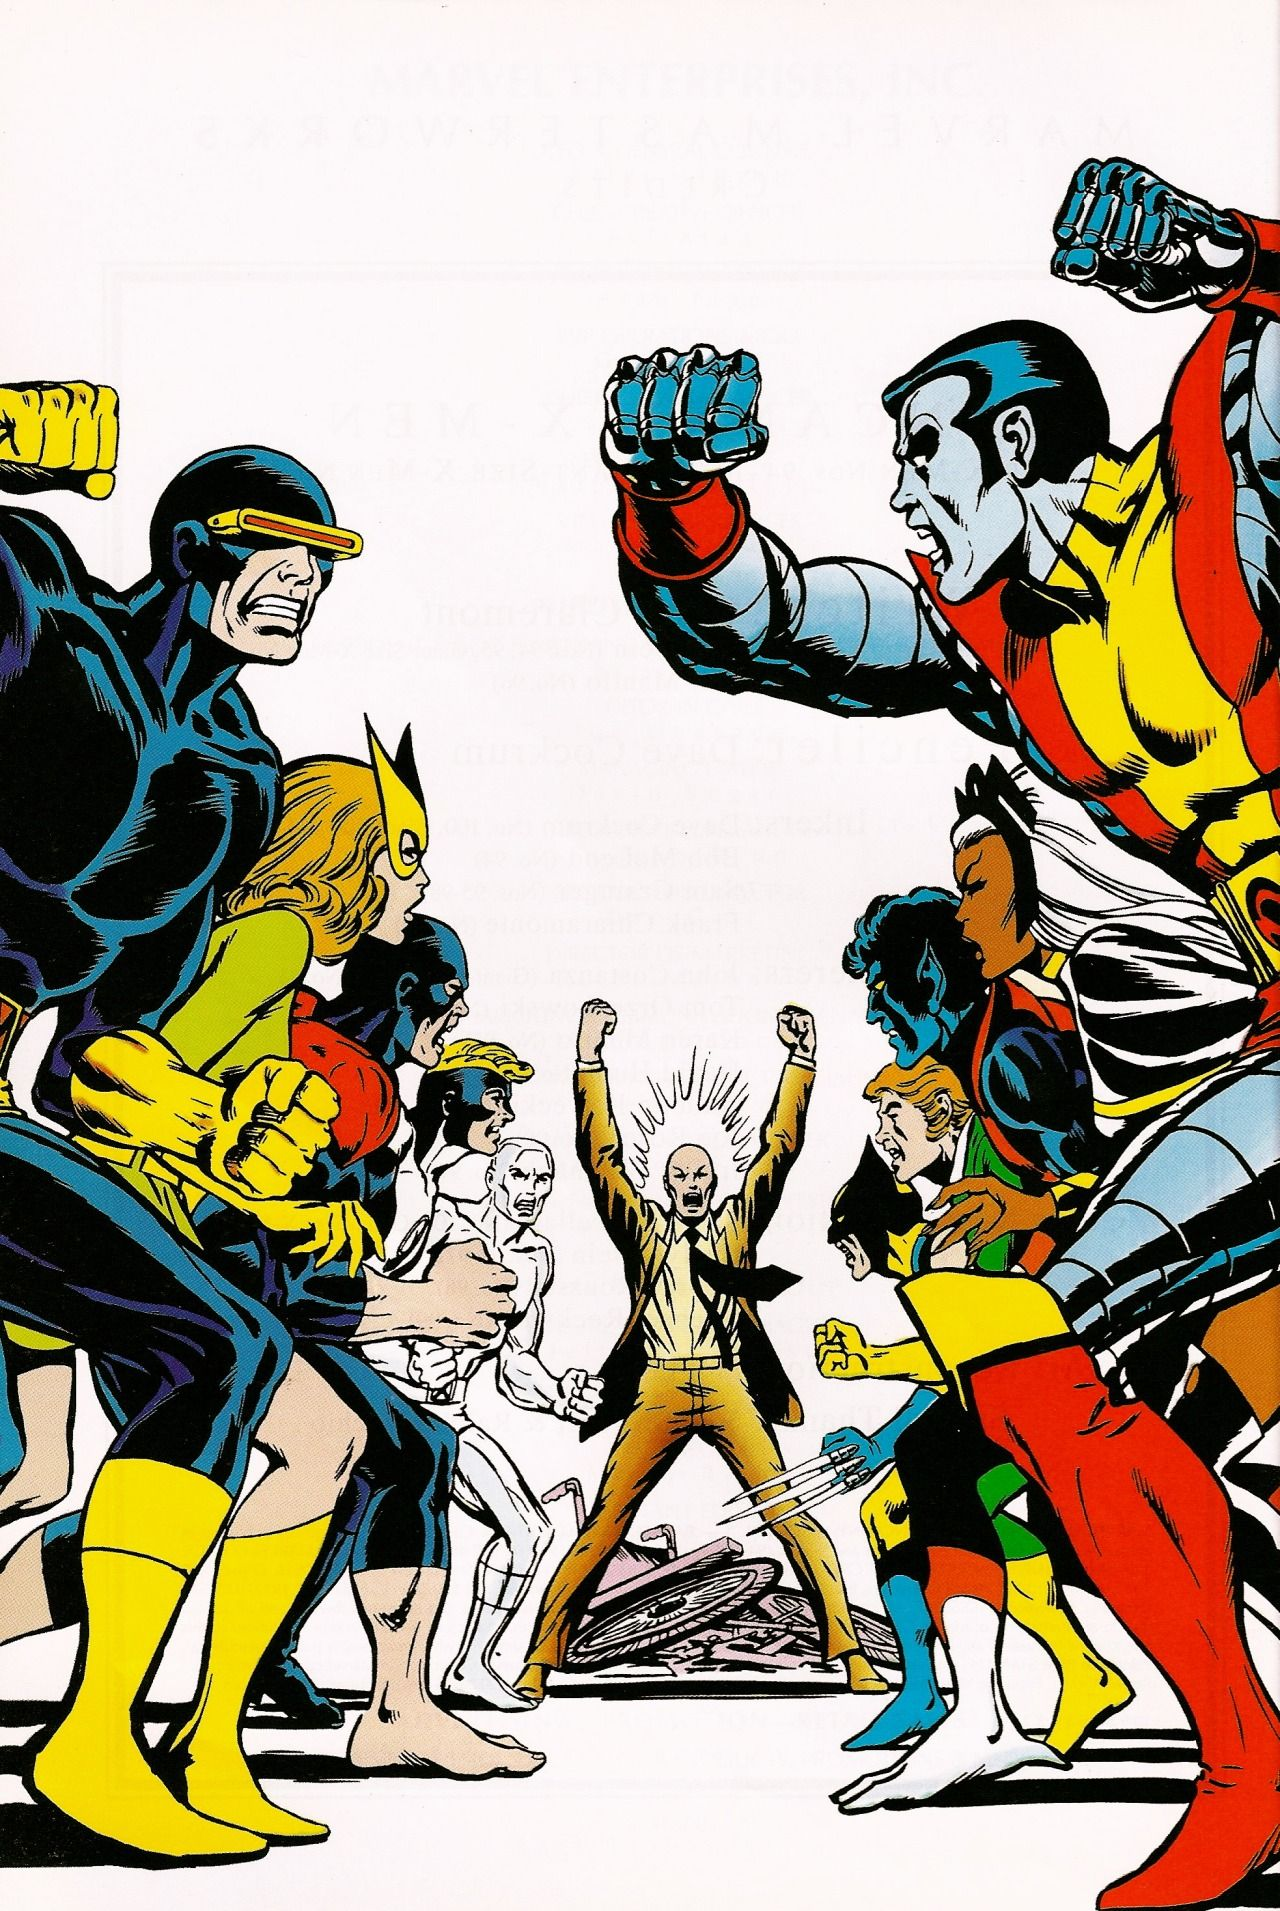 A R C H I V E Rockofeternity X Men Vs X Men Dave Cockrum Comics X Men Classic Comics